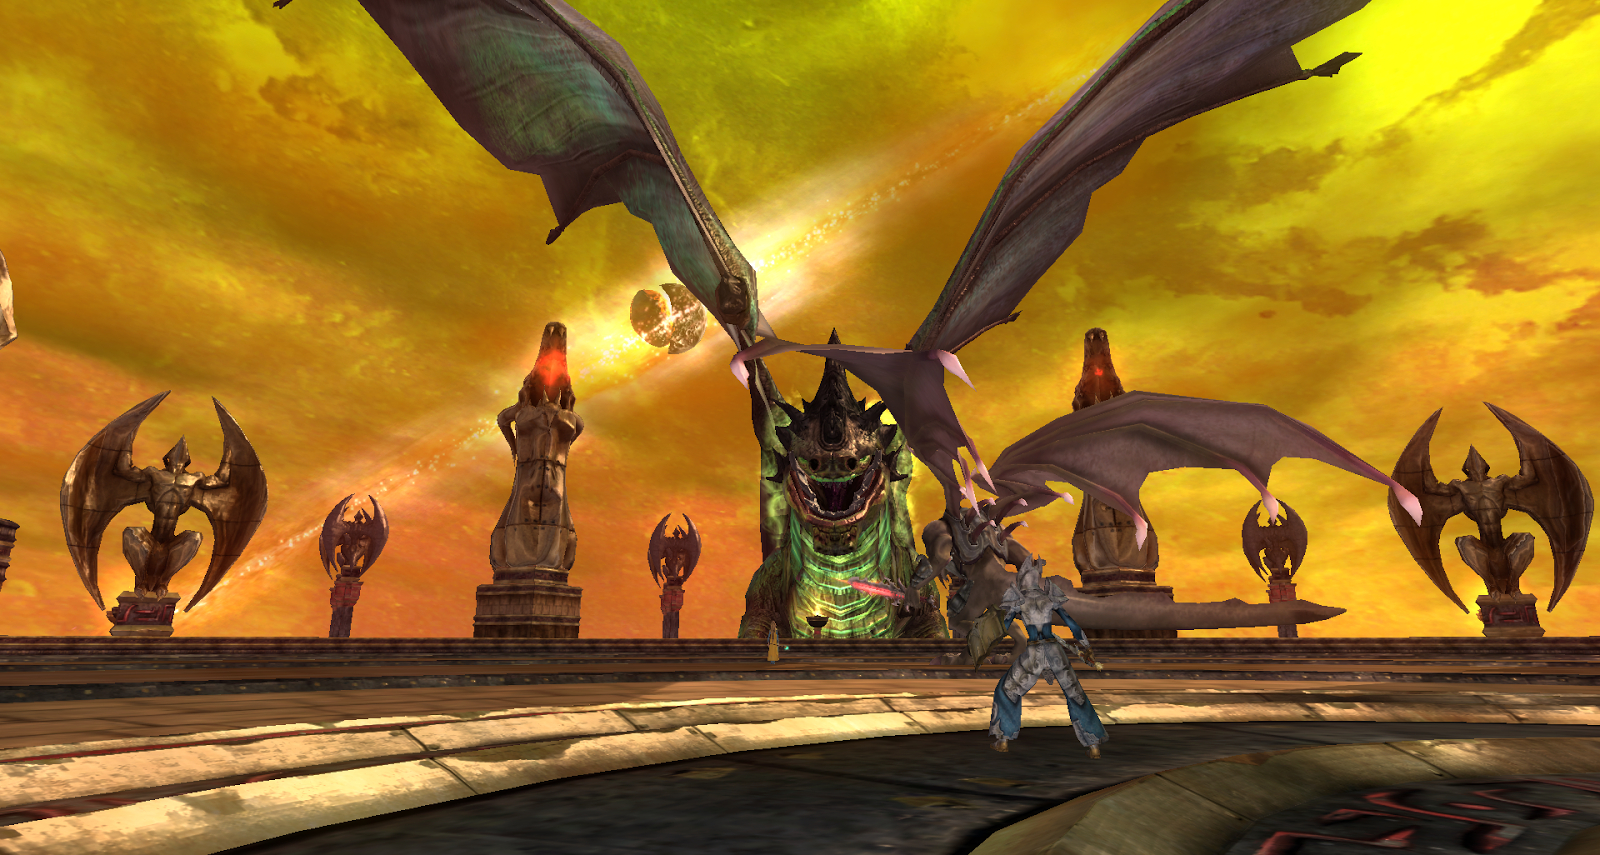 Inventory Full: Get Your Free Level 100 (What, Another?) : EQ2